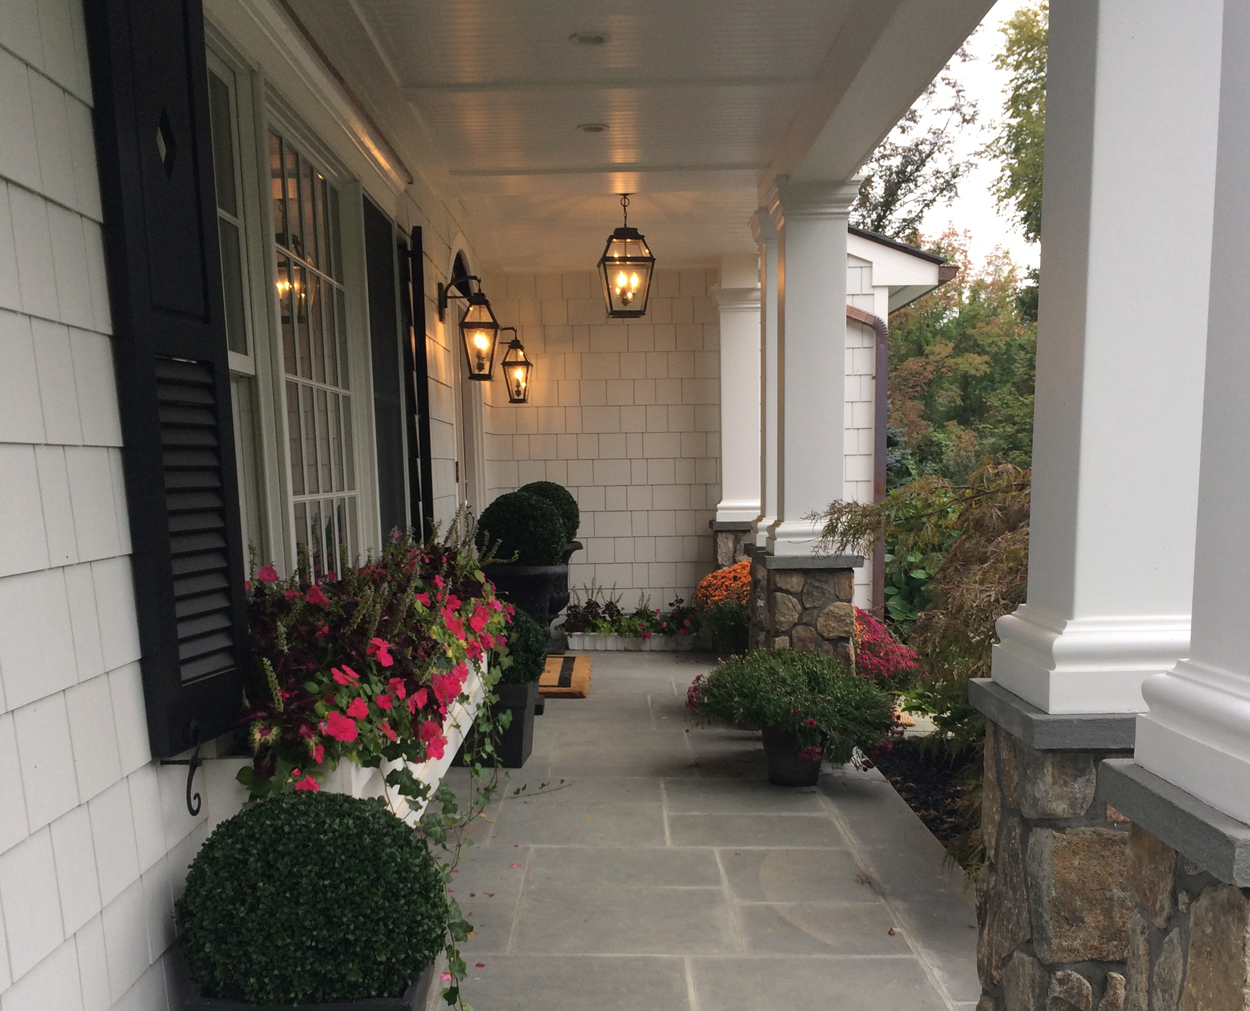 Front porch features beadboard ceiling and columns with stone bases.